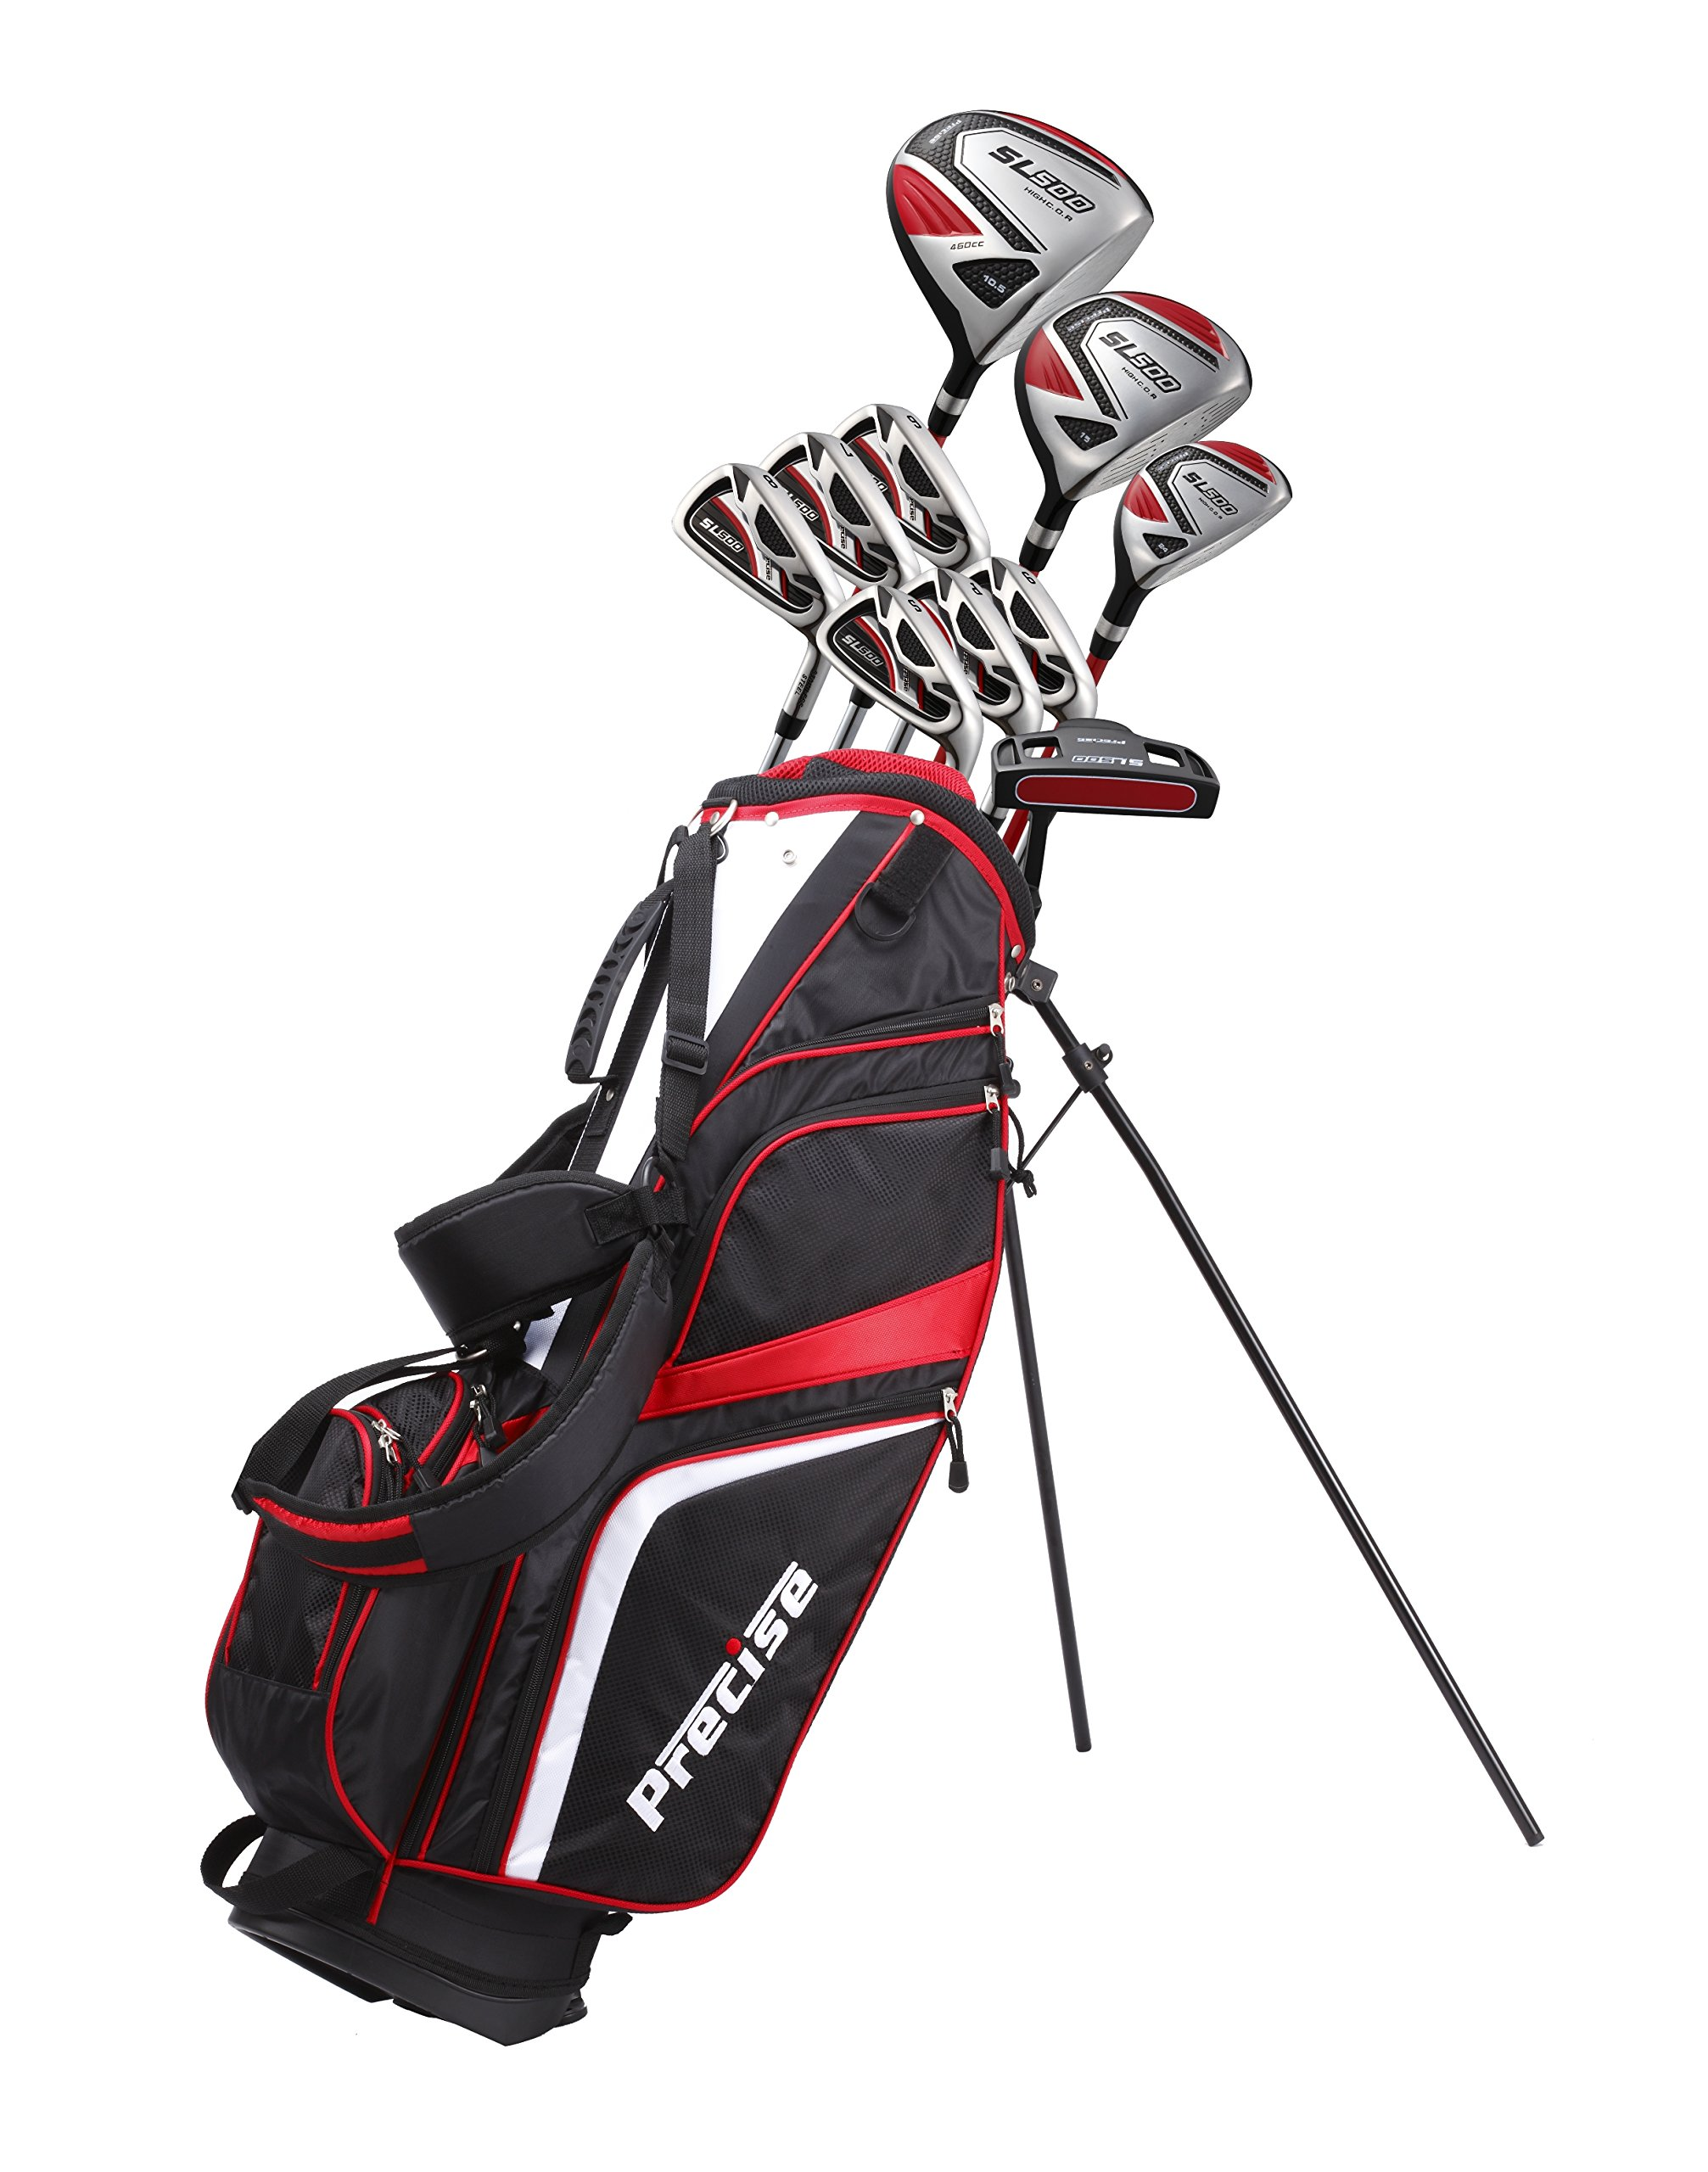 15 Piece Men's Complete Golf Set Includes Titanium Driver, S.S. Fairway, S.S. Hybrid, S.S. 6-SW Irons, Putter, Stand Bag, 3 Head covers Right Hand